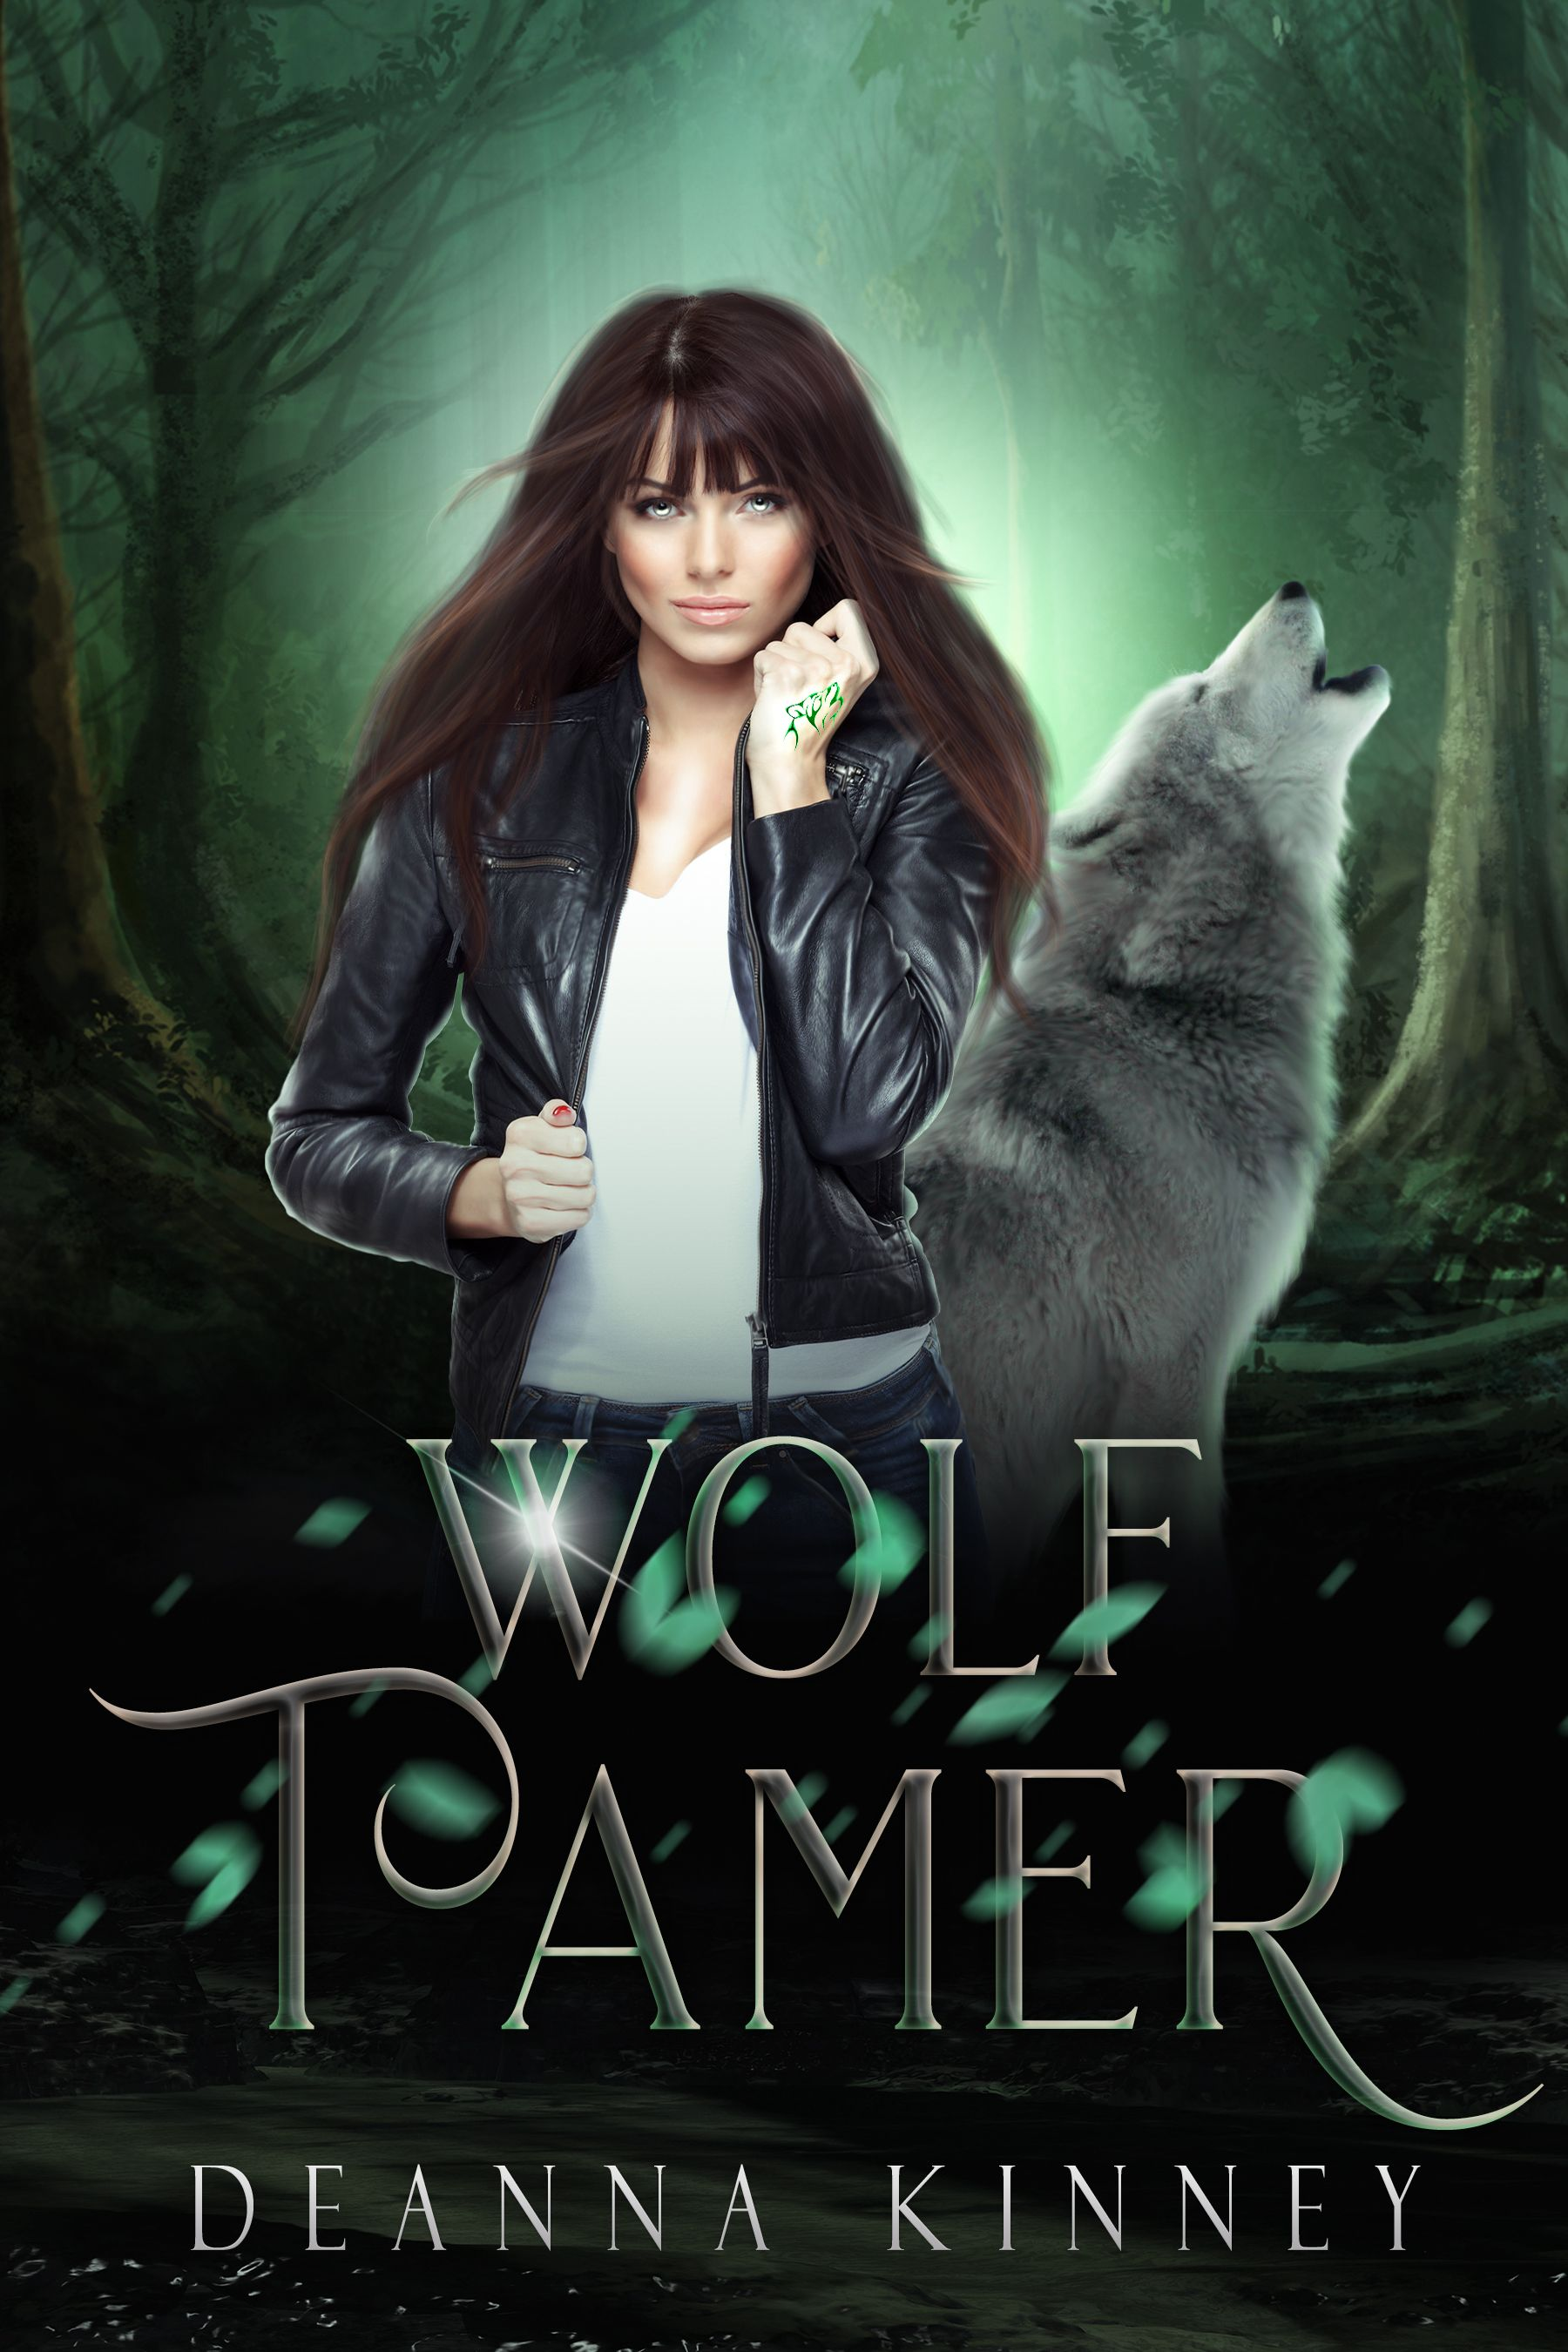 Premade And Custom Book Cover Design By Luminescence Covers Books Covers Design Amazon Ebook C Supernatural Books Paranormal Romance Books Fantasy Books